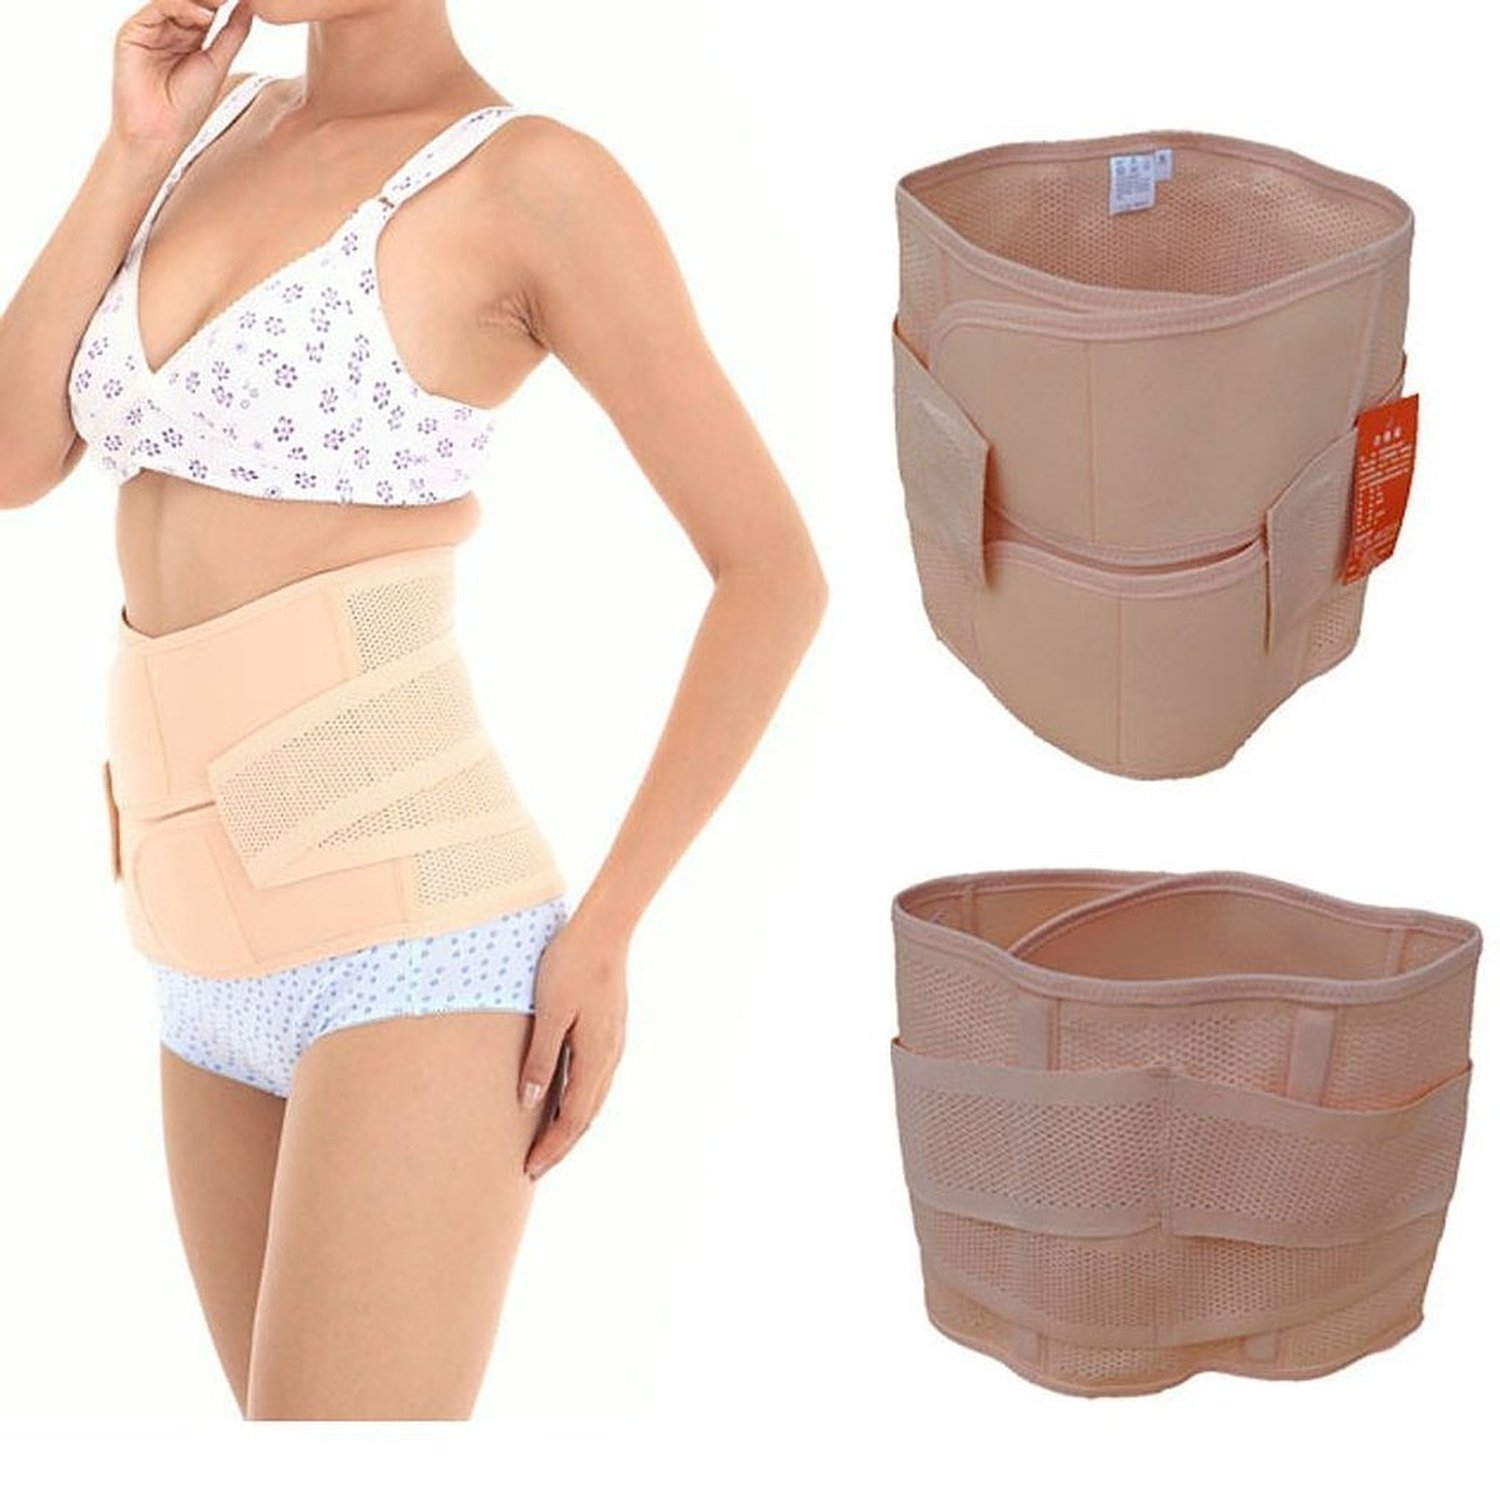 Healthcom Waist Slimming Belt Shaper Wrapper Band Abdomen Abdominal Binder Women Postnatal Pregnancy Belt-Support Postpartum Recoery Support Girdle Belt Belly(Size:L)